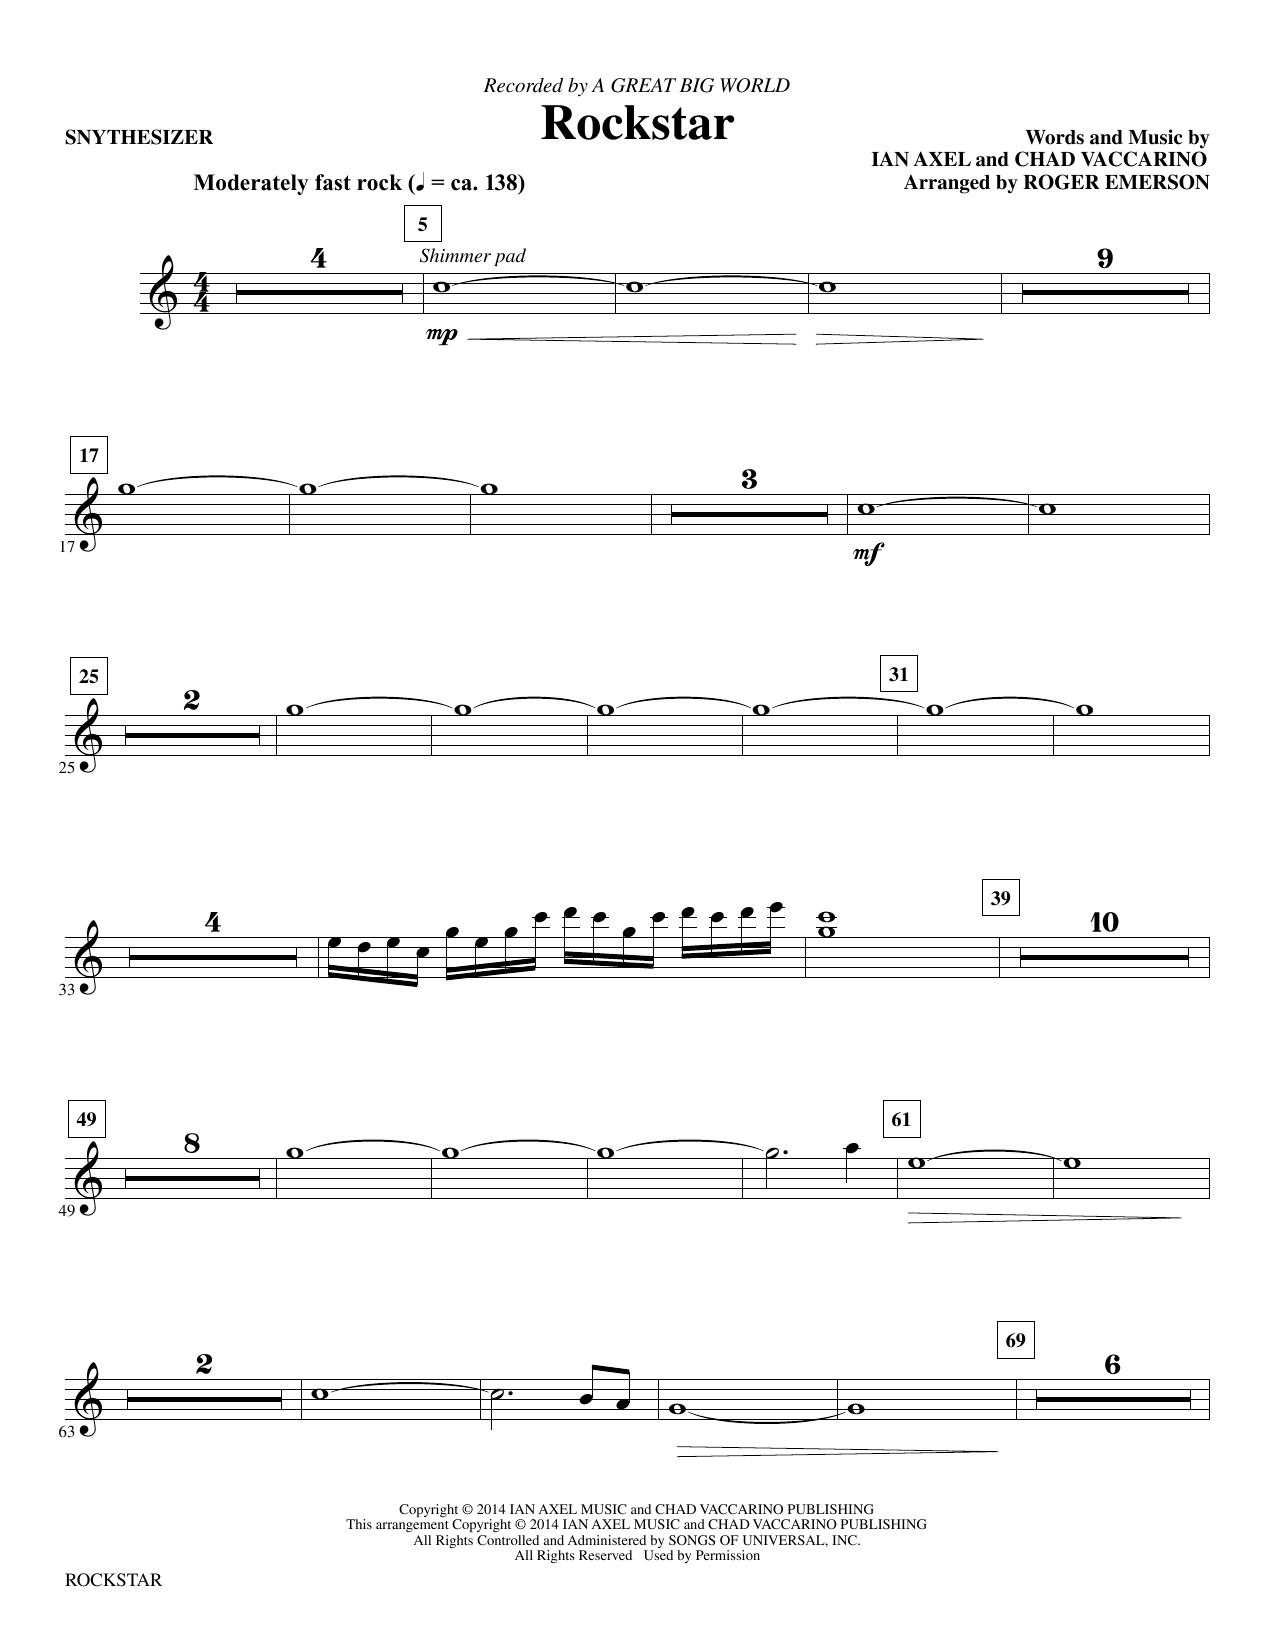 Download A Great Big World 'Rockstar (arr. Roger Emerson) - Synthesizer' Digital Sheet Music Notes & Chords and start playing in minutes